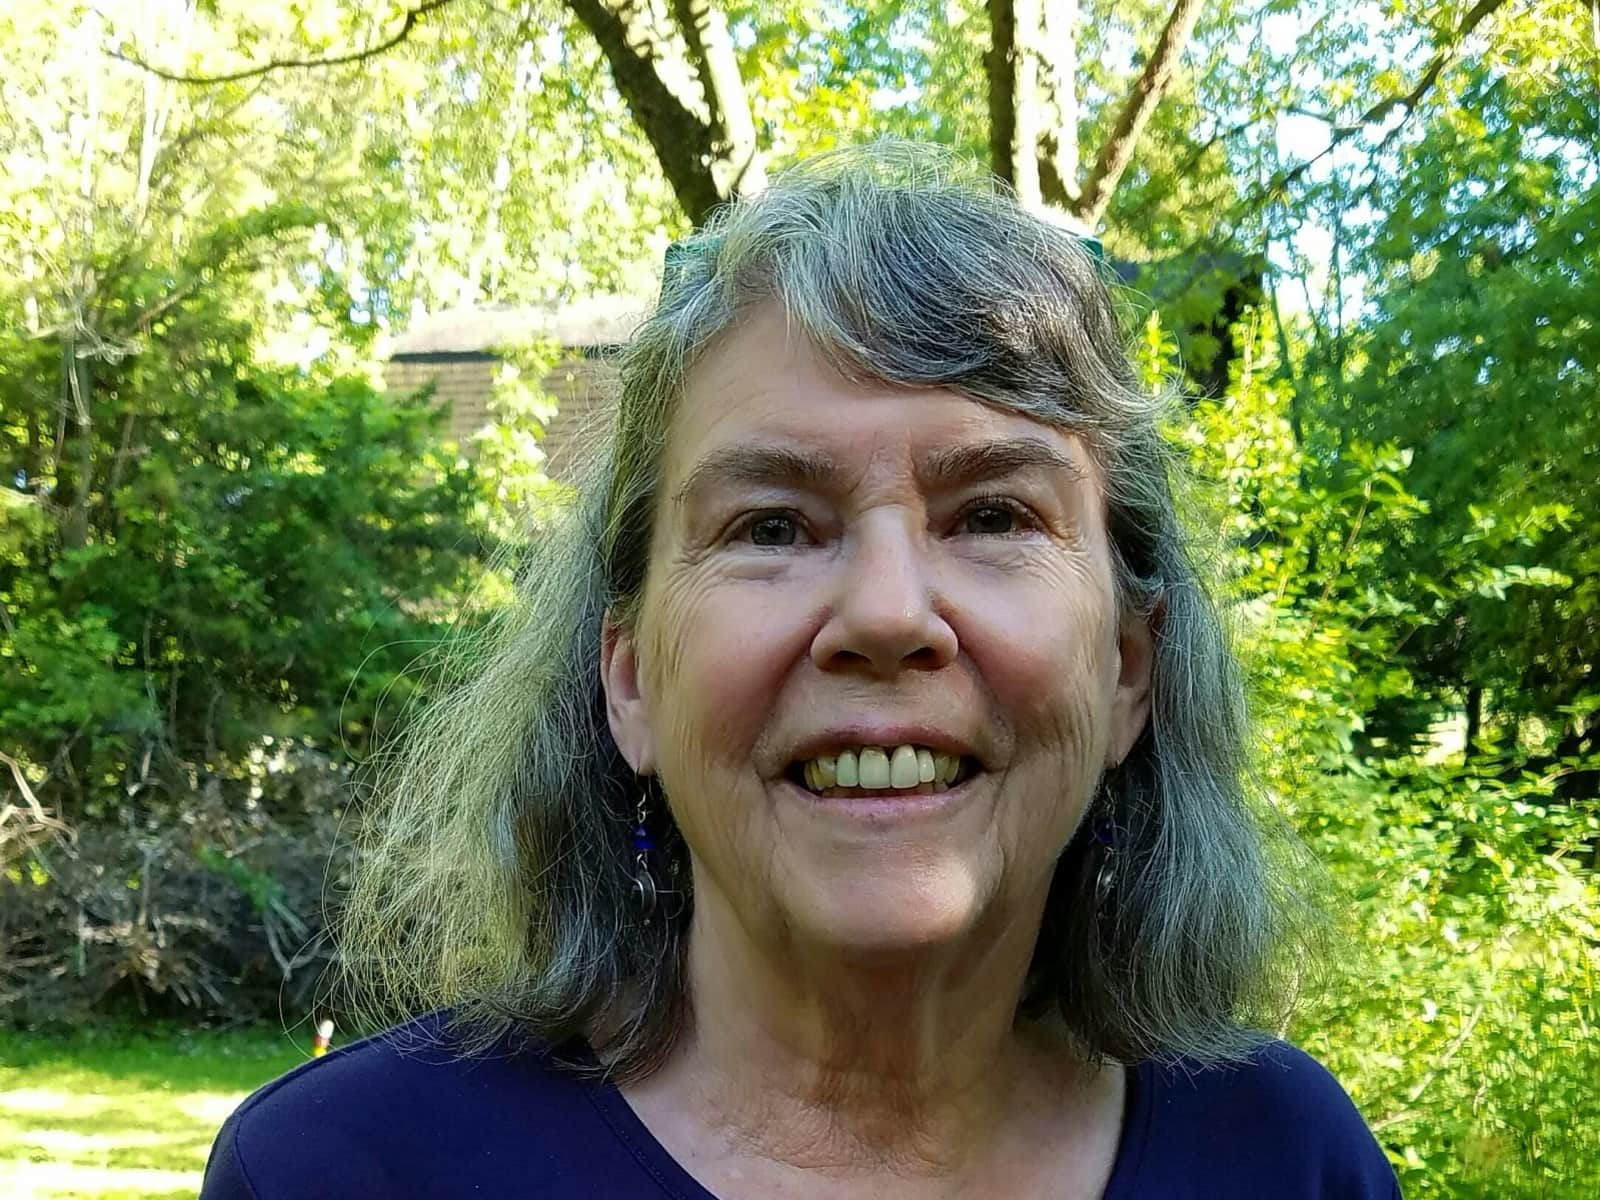 Mary beth from Madison, Wisconsin, United States